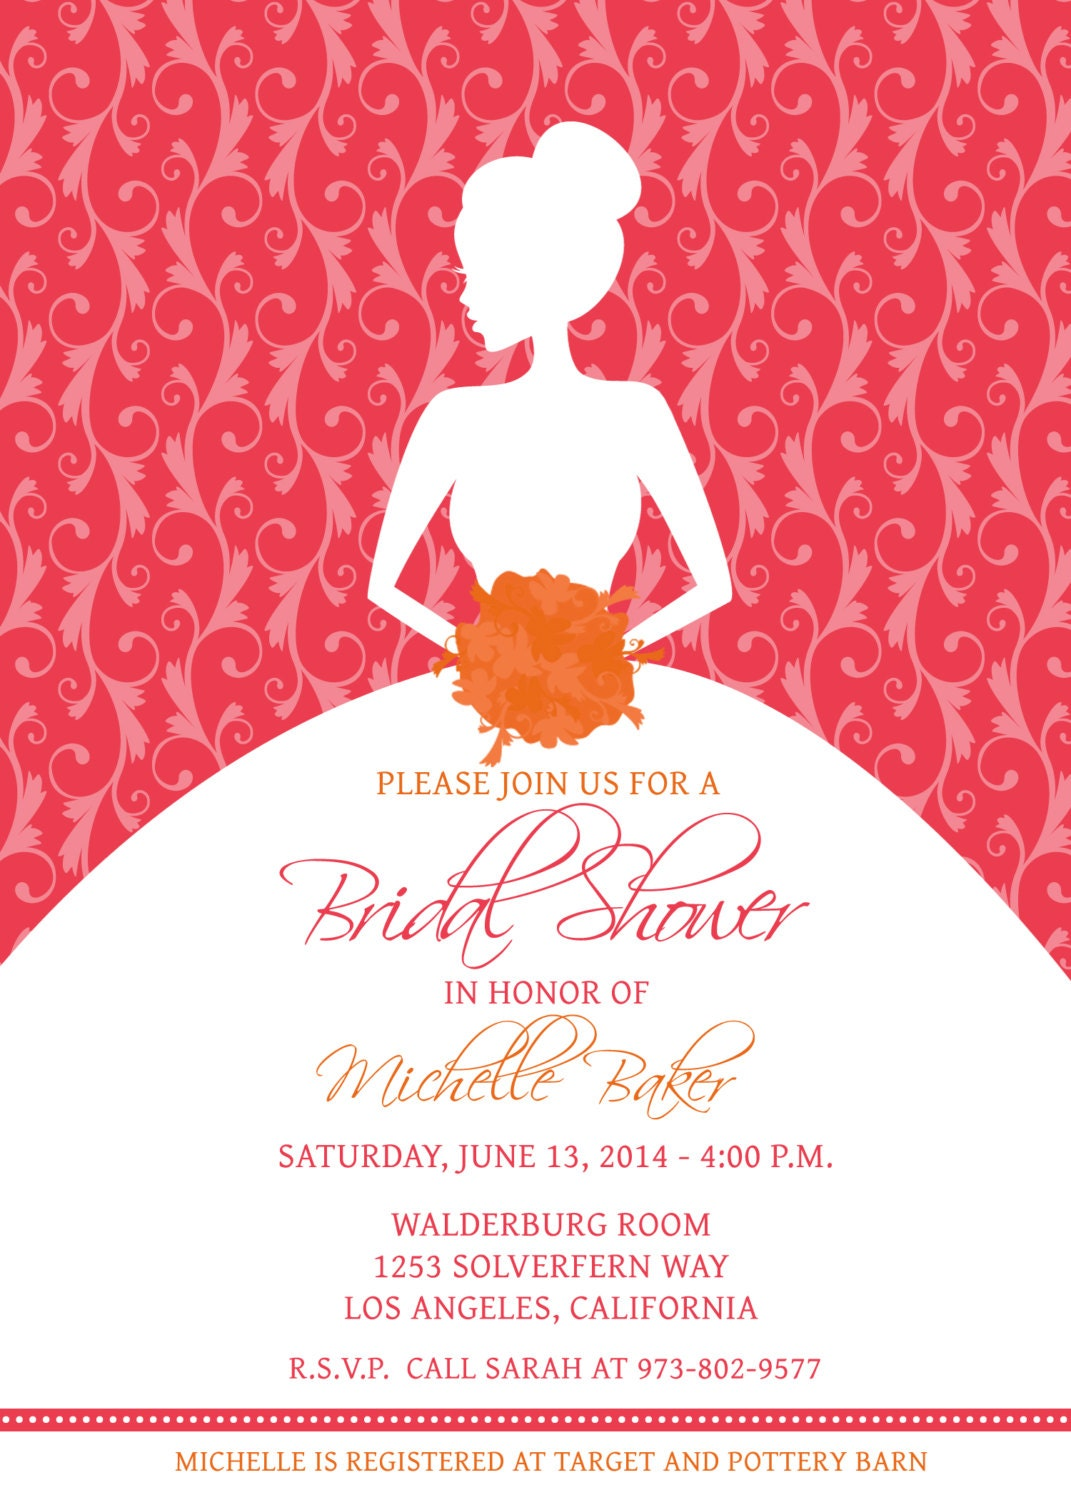 Bridal Shower Invitations: Bridal Shower Invitation Maker Free